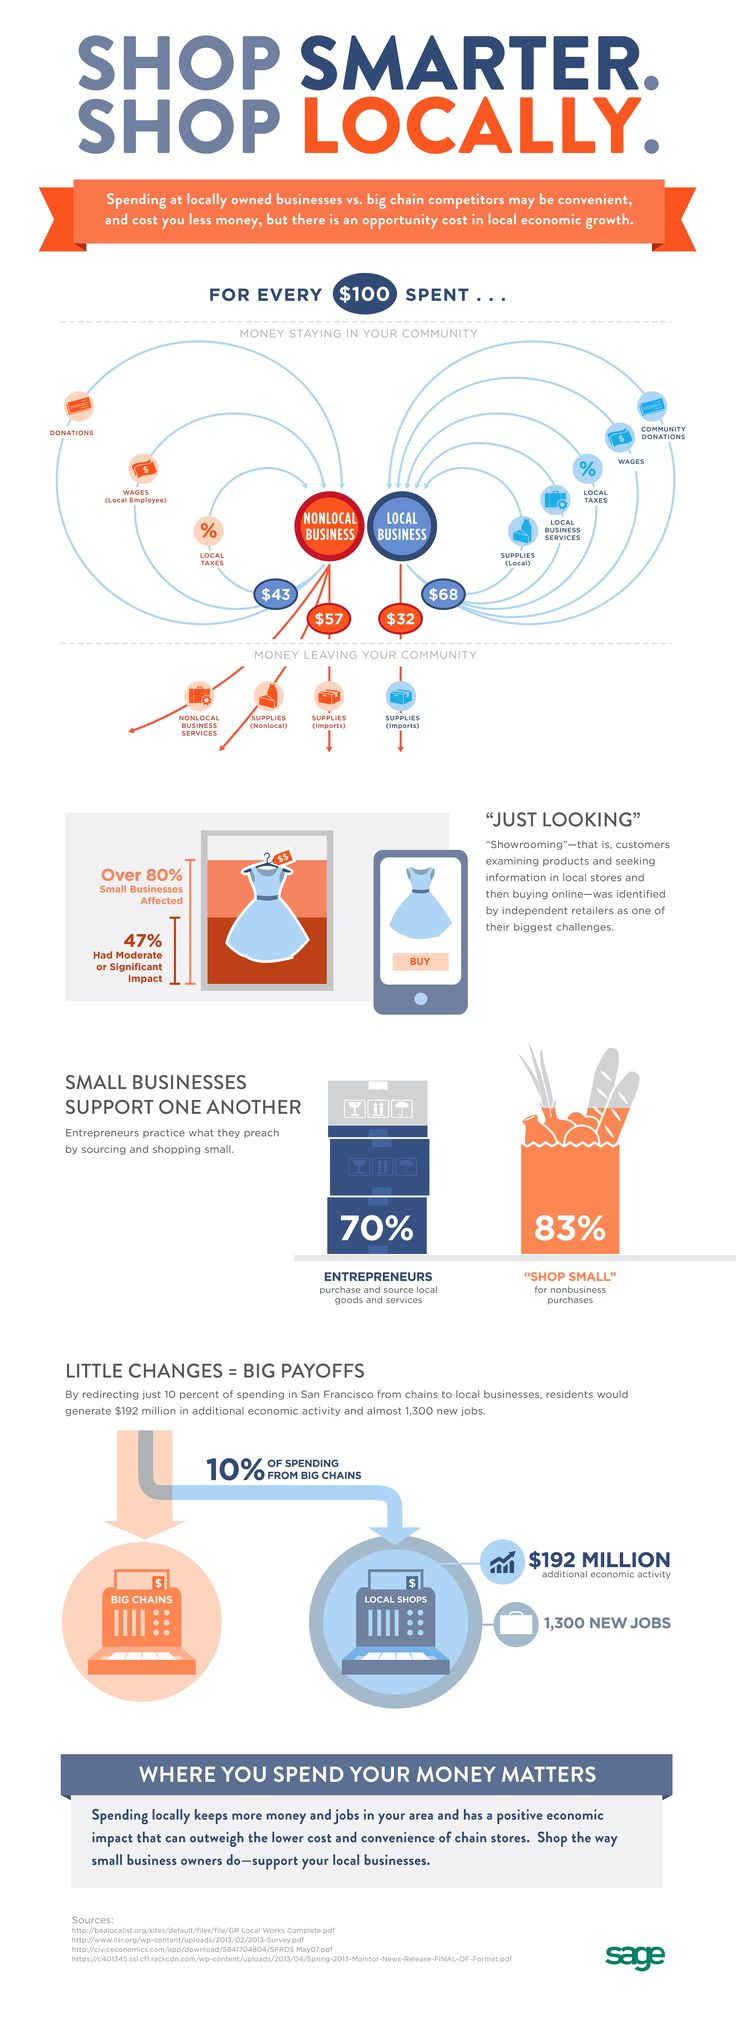 Do You Shop Local? You Should! The Case for Shopping Local (Infographic) #smallbiz #shoplocal